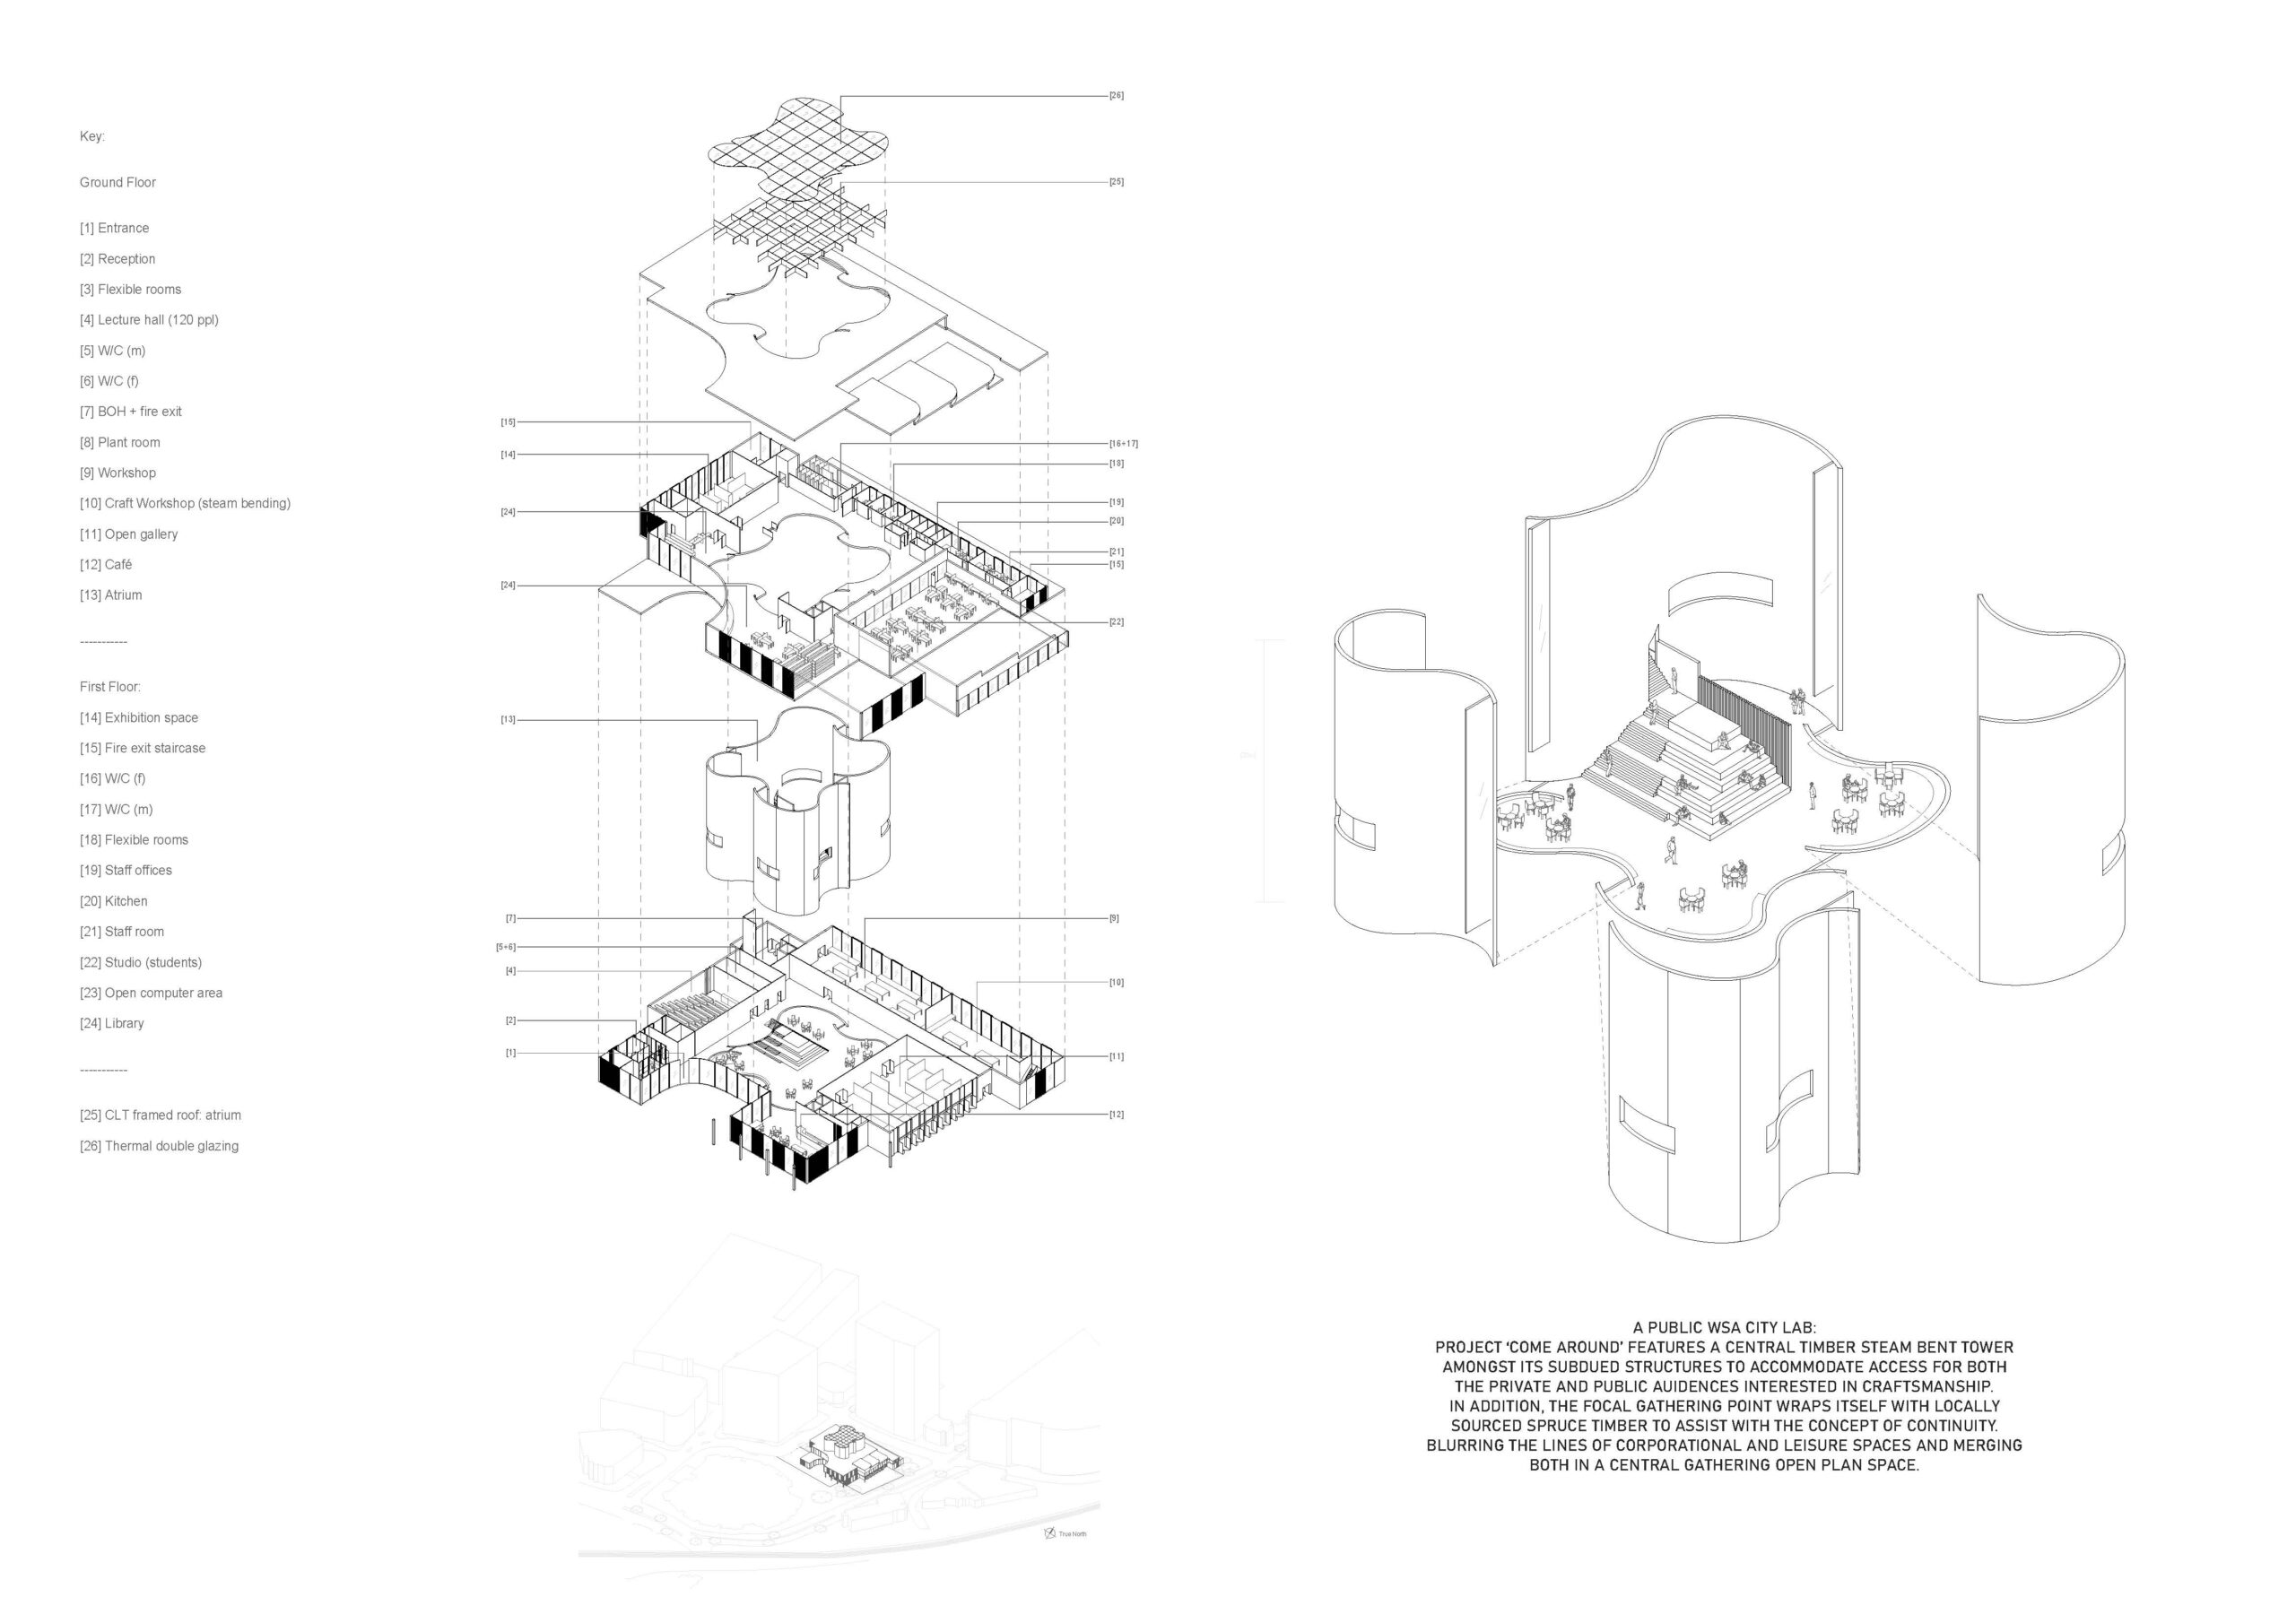 Exploded Axonometric showing building structure by Jemma Ho